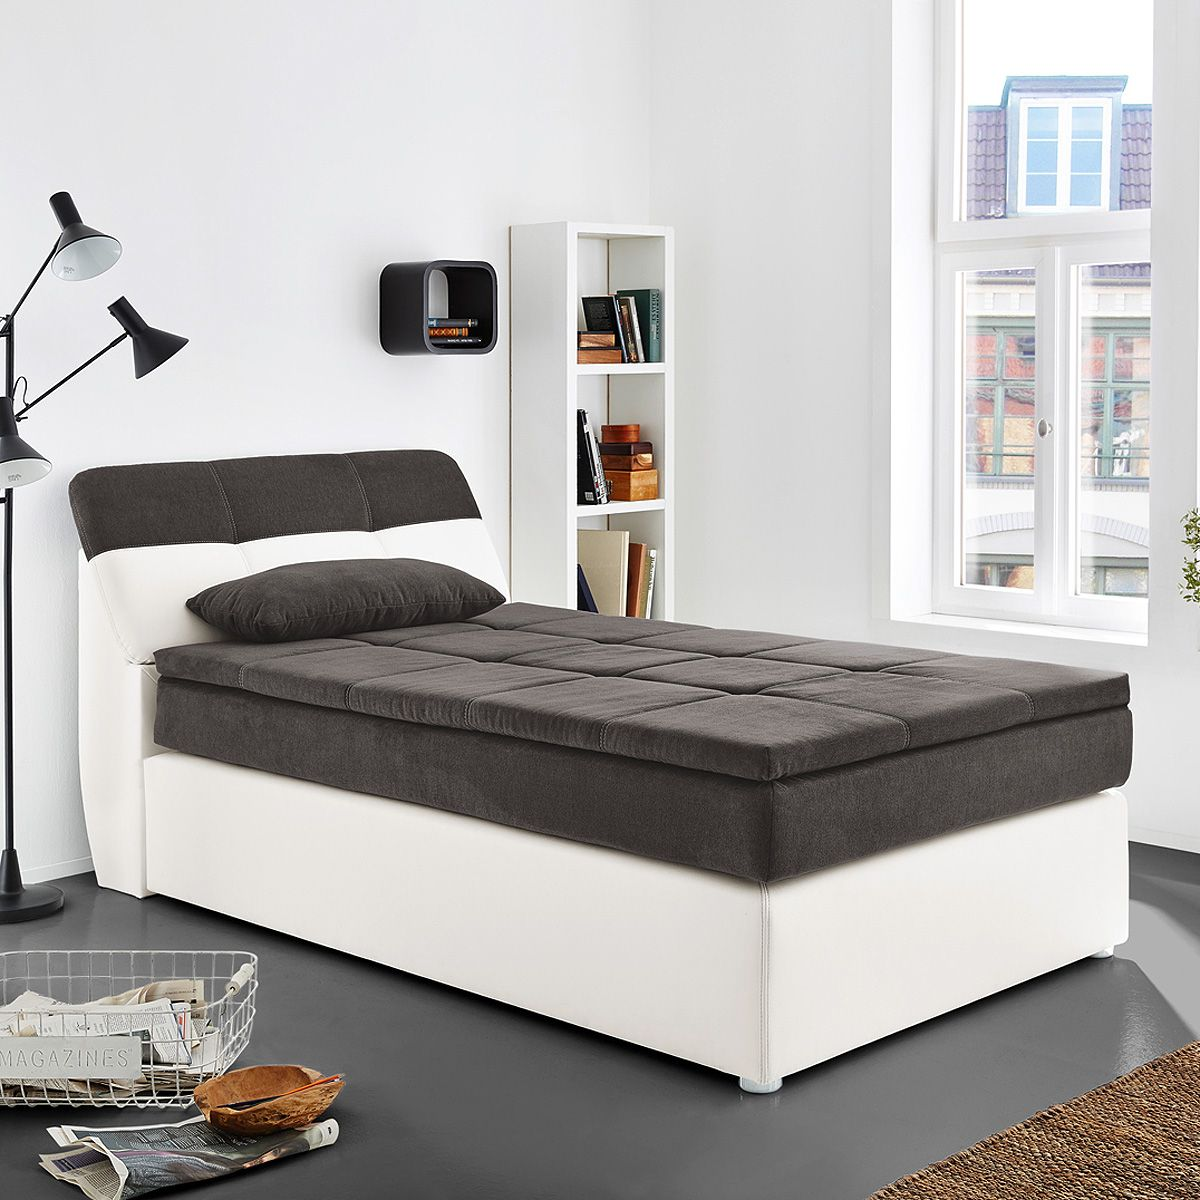 nett bett 120x200 grau get cosy pinterest bett 120 bett und grau. Black Bedroom Furniture Sets. Home Design Ideas